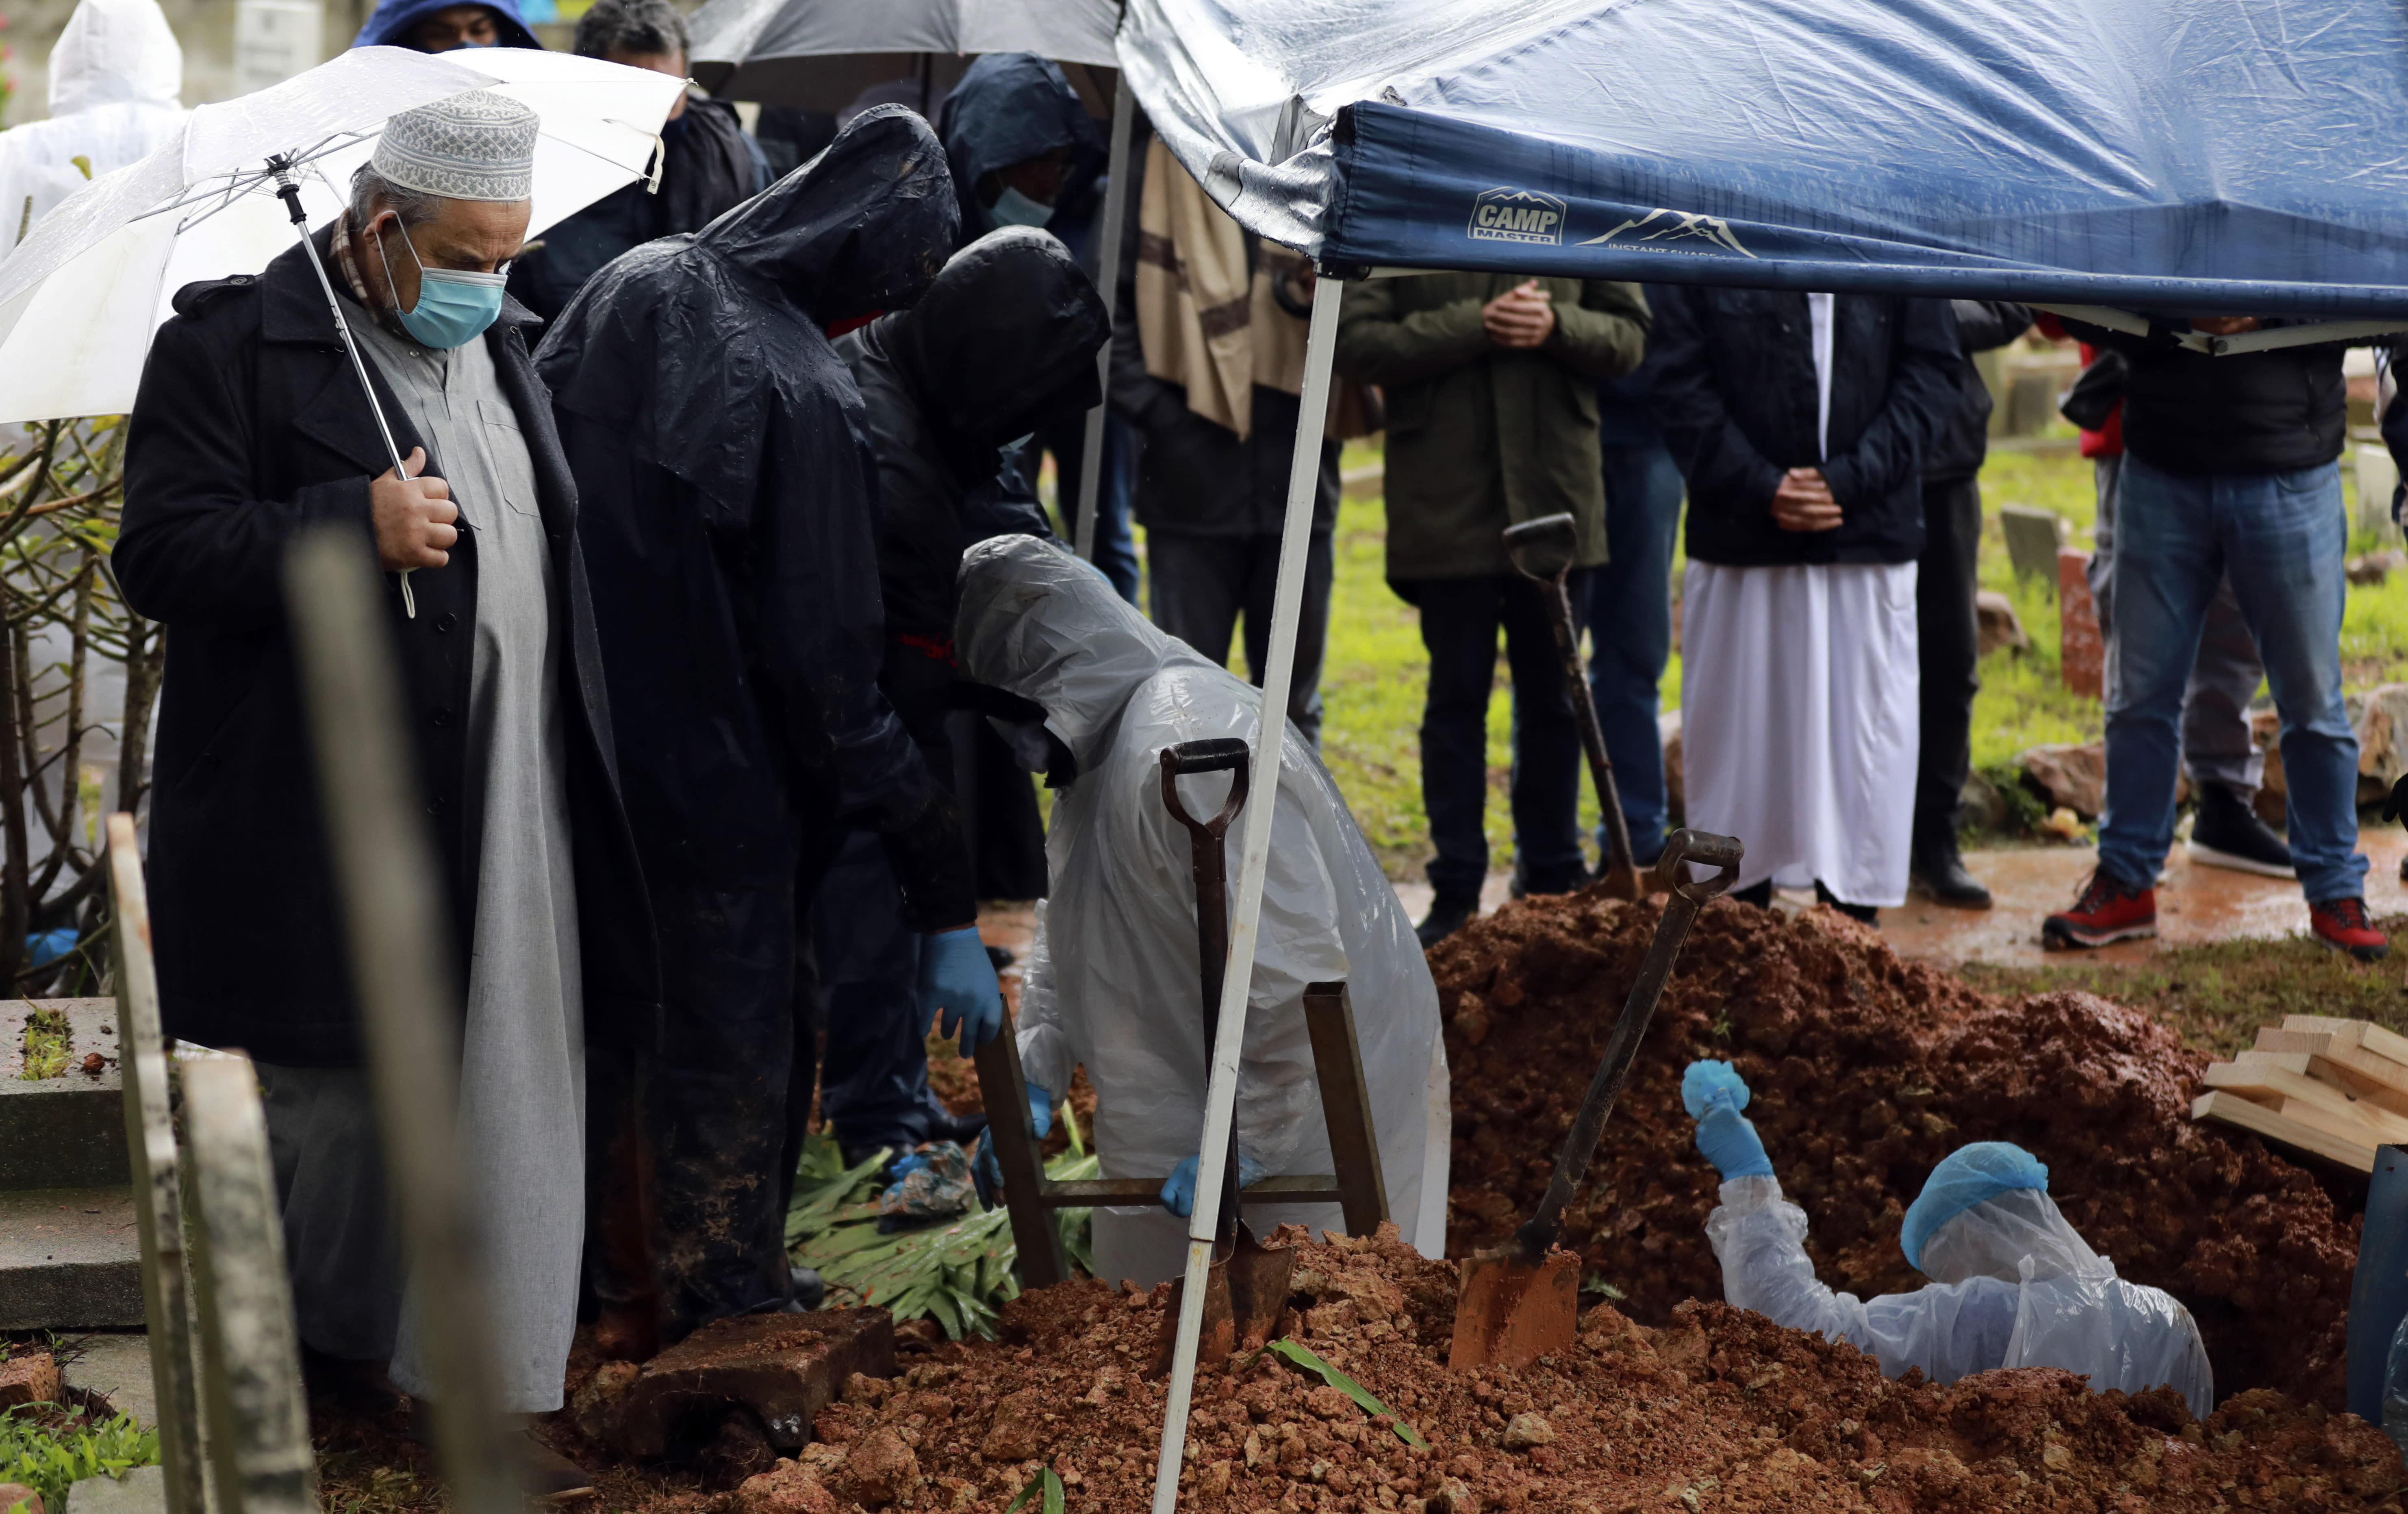 Undertakers wearing personal protective equipment exit the grave of Shaykh Seraj Hassan Hendricks during the funeral at the Mowbray cemetery in Cape Town, South Africa, Friday July 10, 2020. Hendricks who died of COVID-19 was the resident sheikh at the Azzawia Institute. (AP Photo/Nardus Engelbrecht)